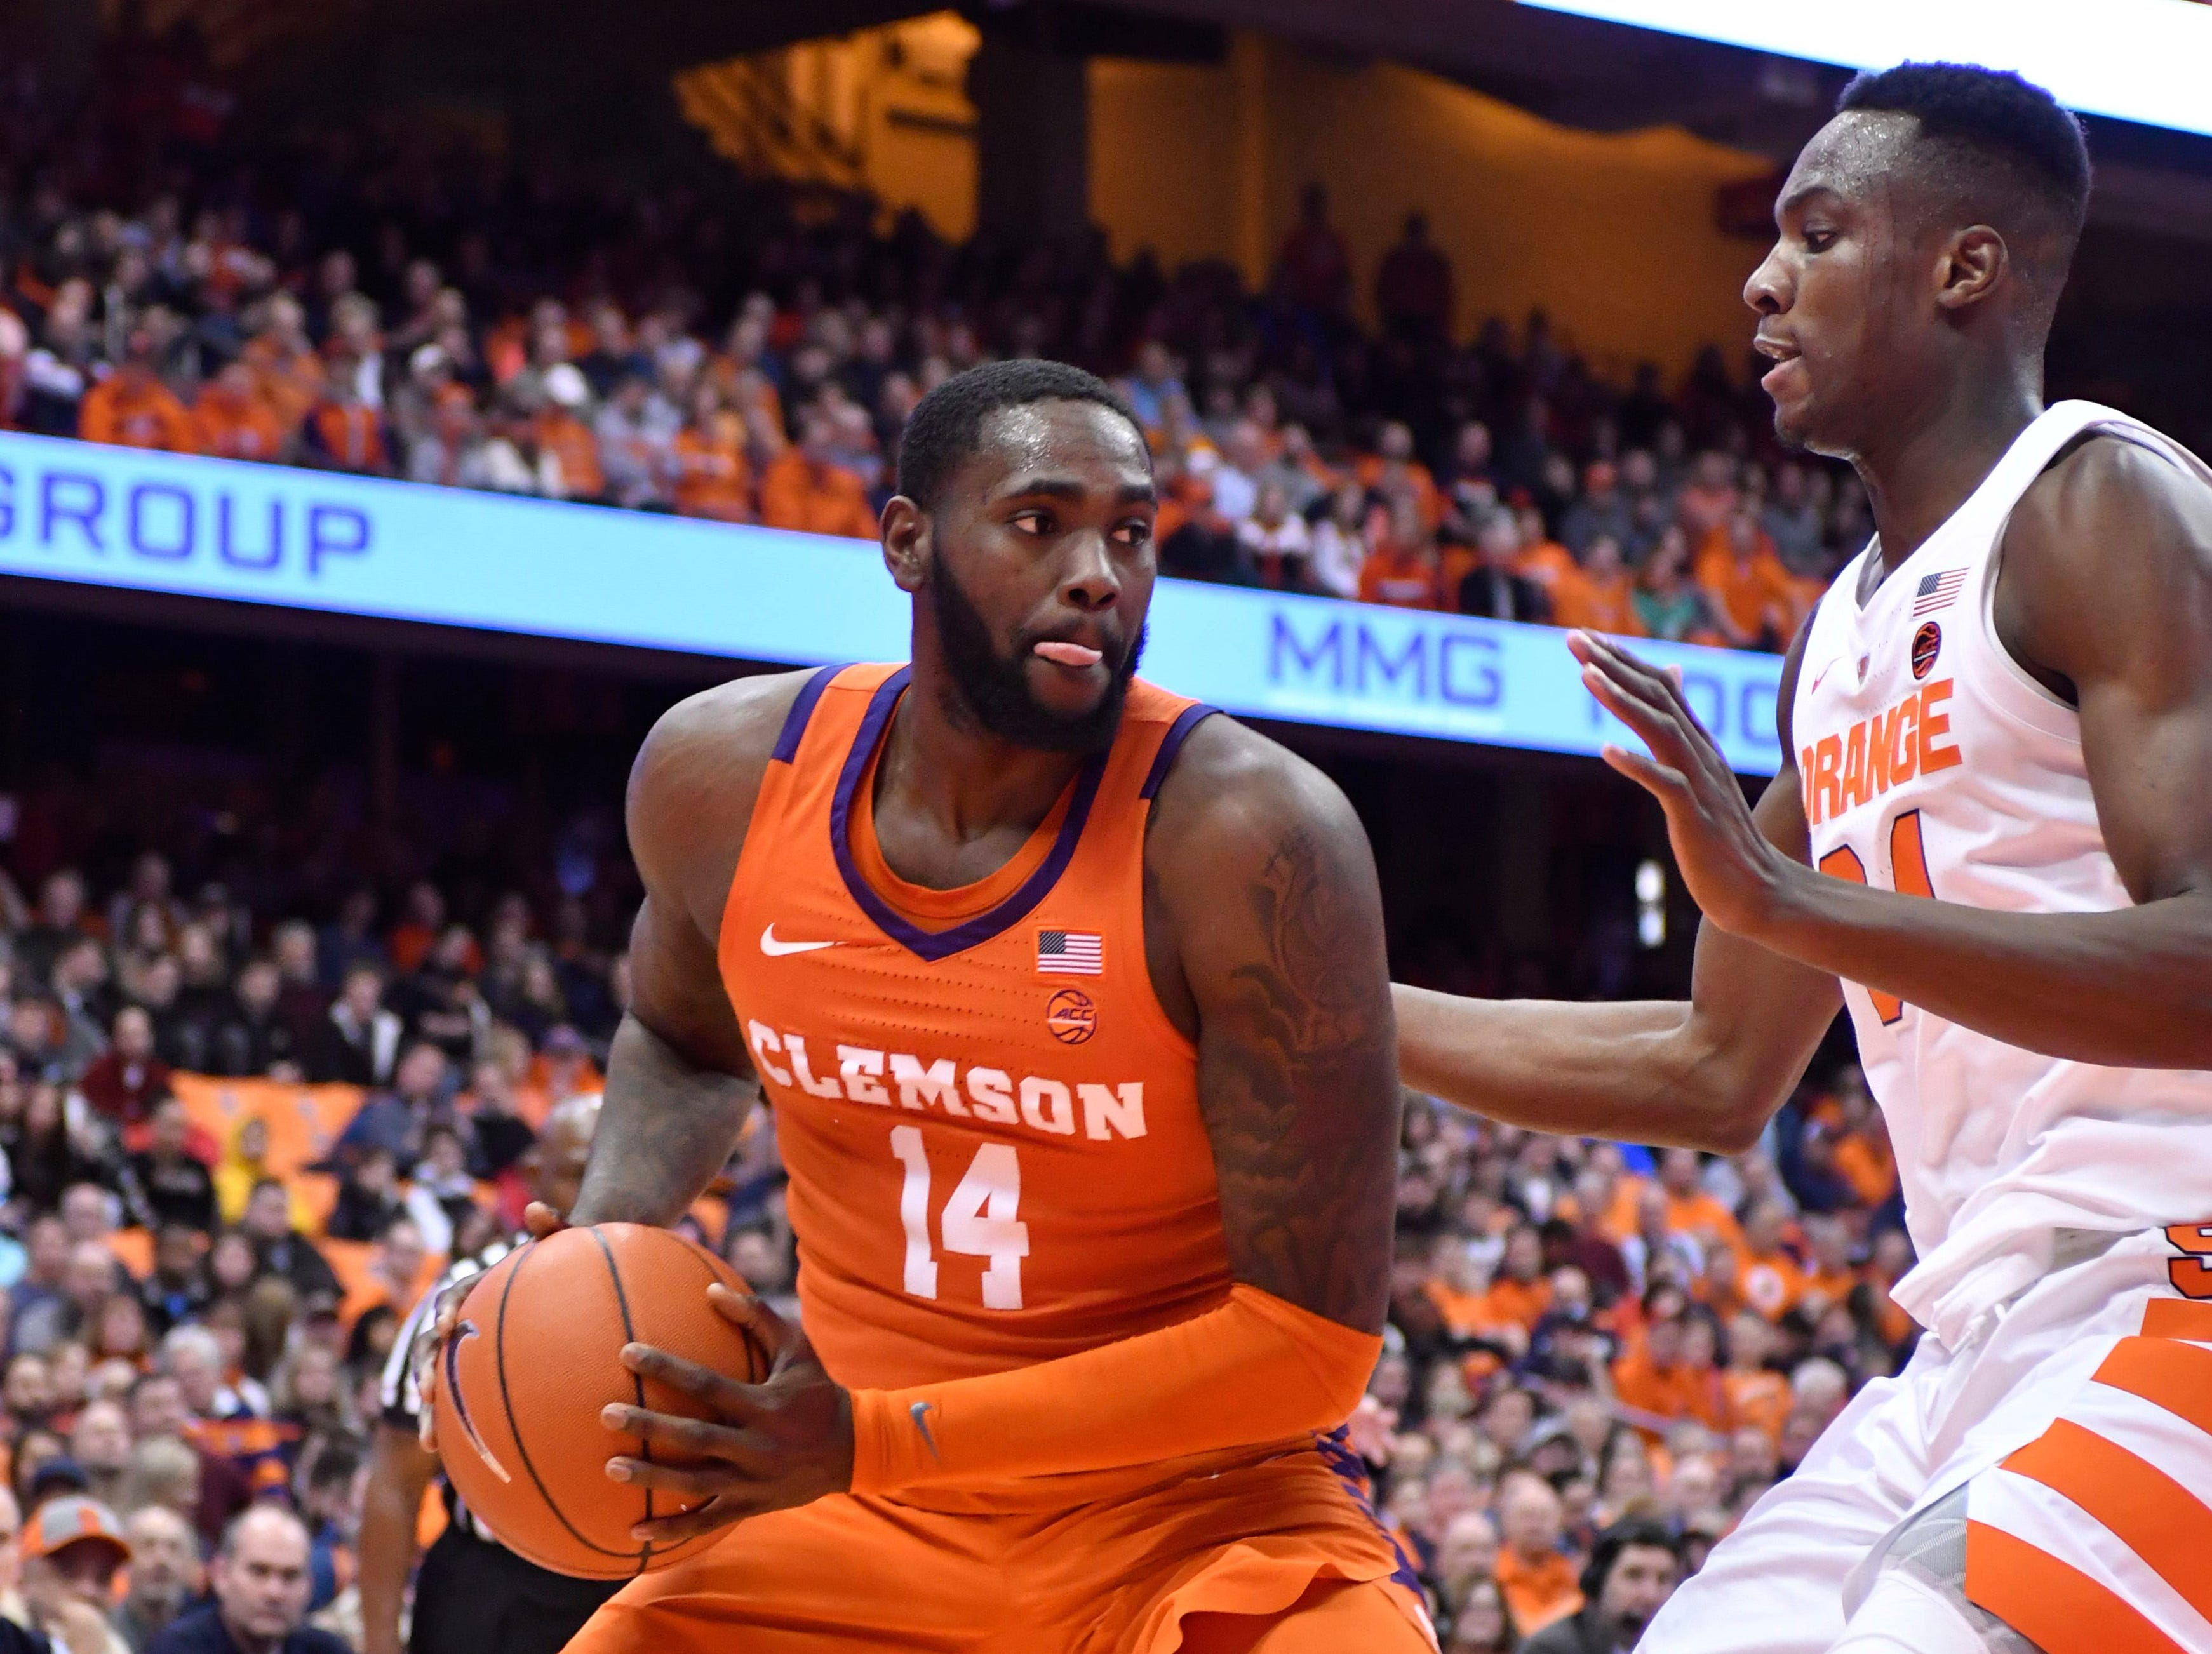 Jan 9, 2019; Syracuse, NY, USA; Clemson Tigers forward Elijah Thomas (14) posts up against Syracuse Orange forward Bourama Sidibe (34) in the first half at the Carrier Dome.